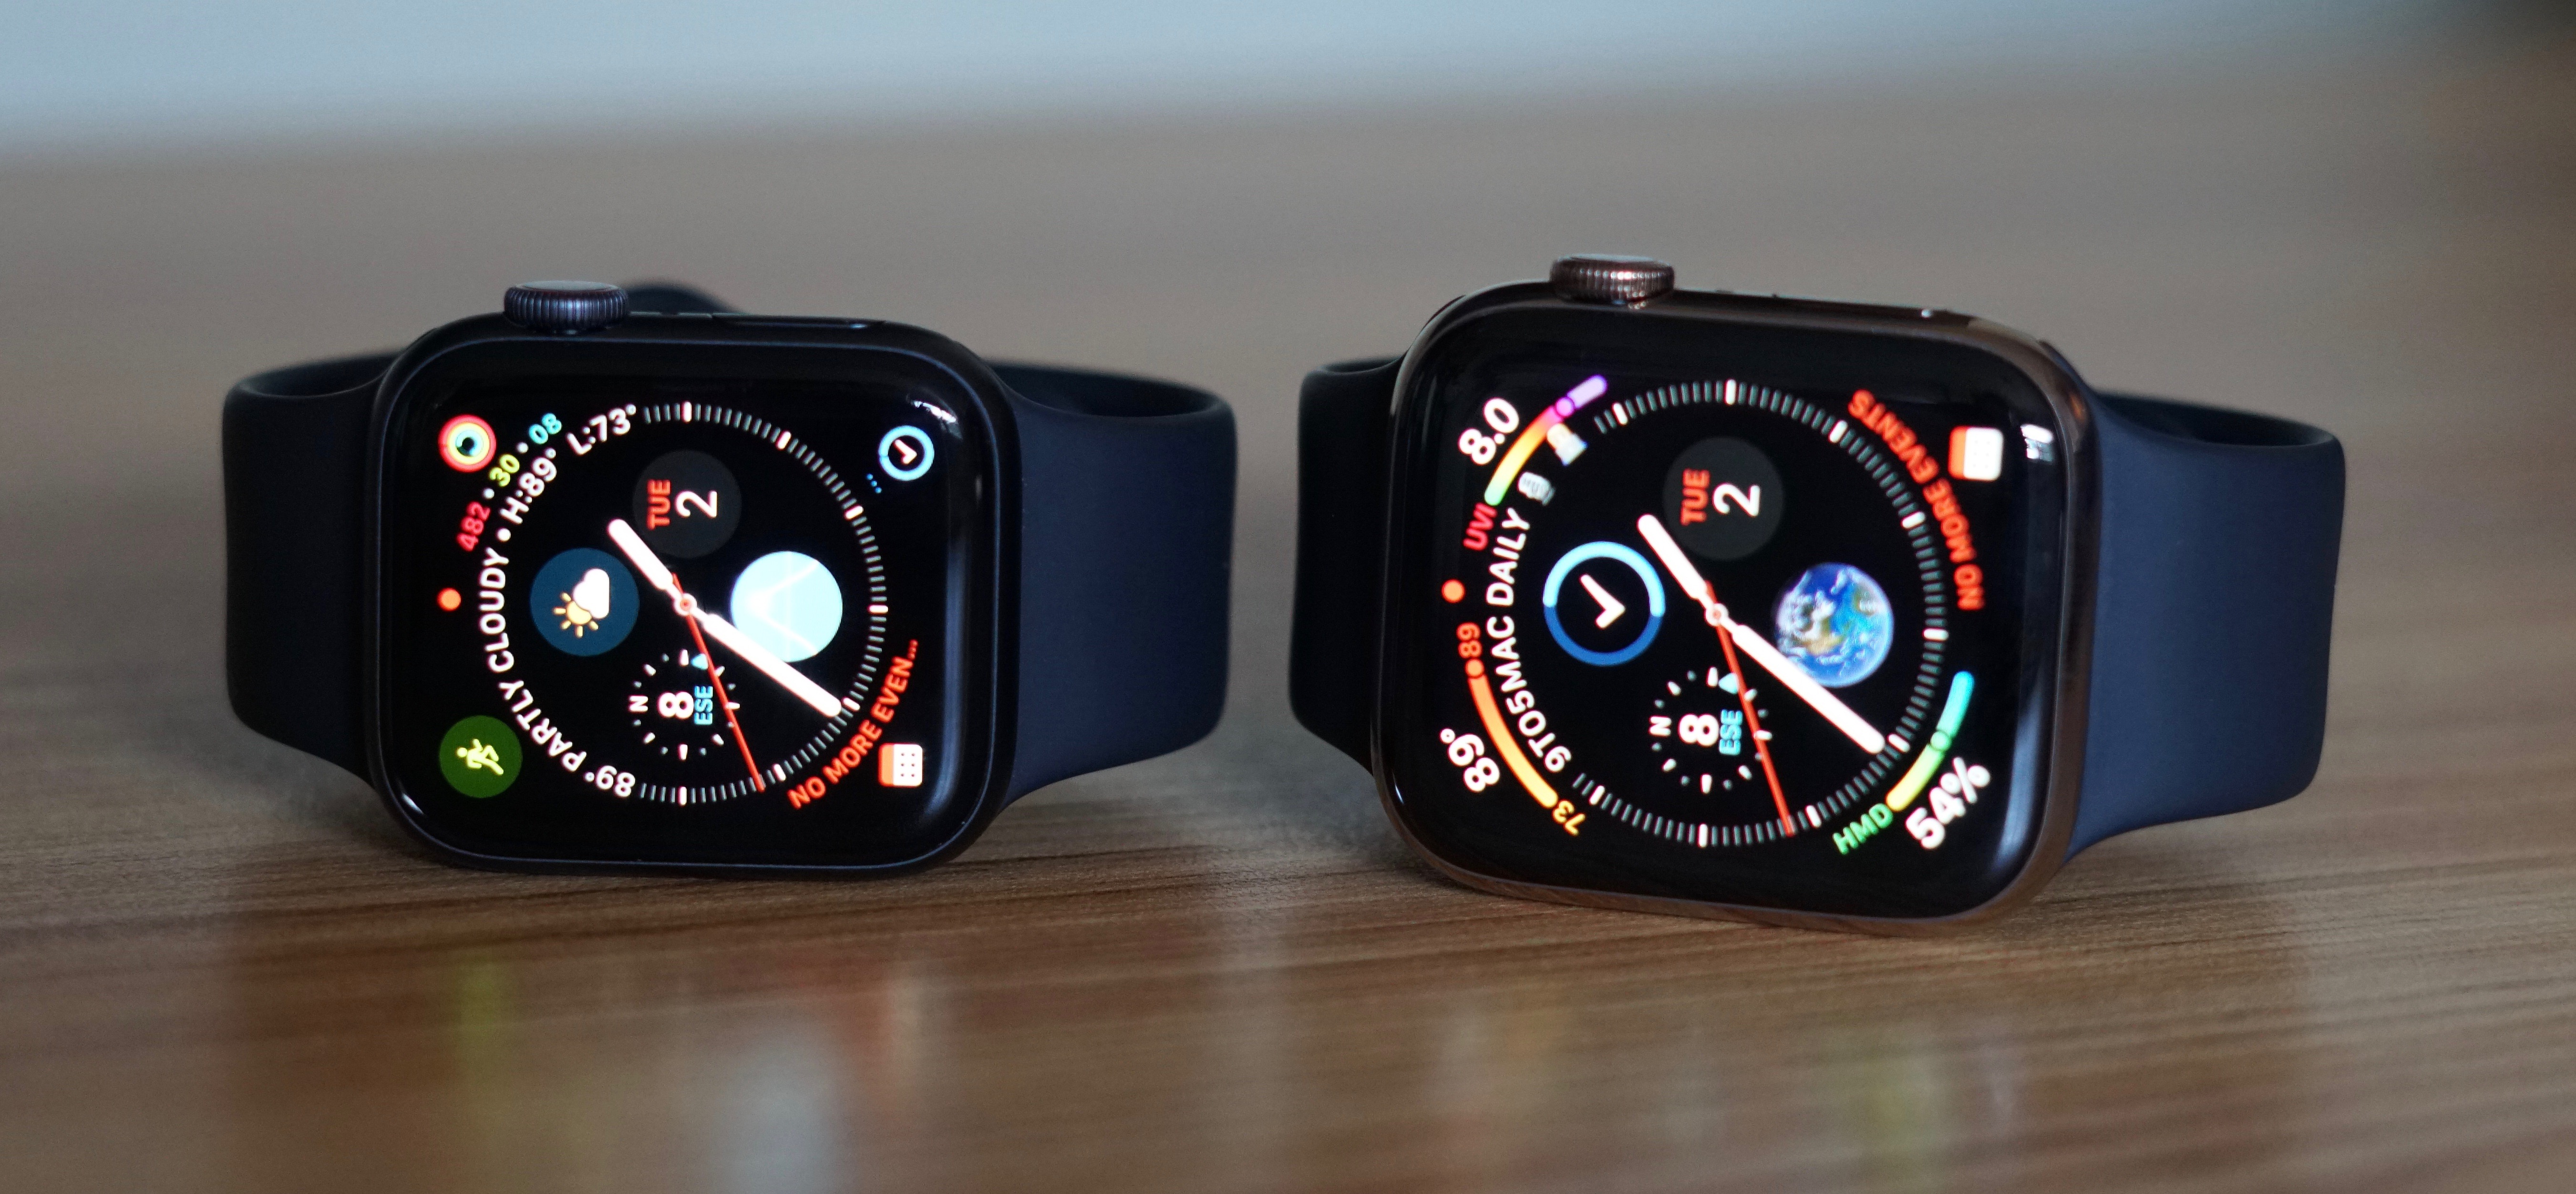 3286909ff485 Customizing the Infograph face on Apple Watch Series 4 - 9to5Mac